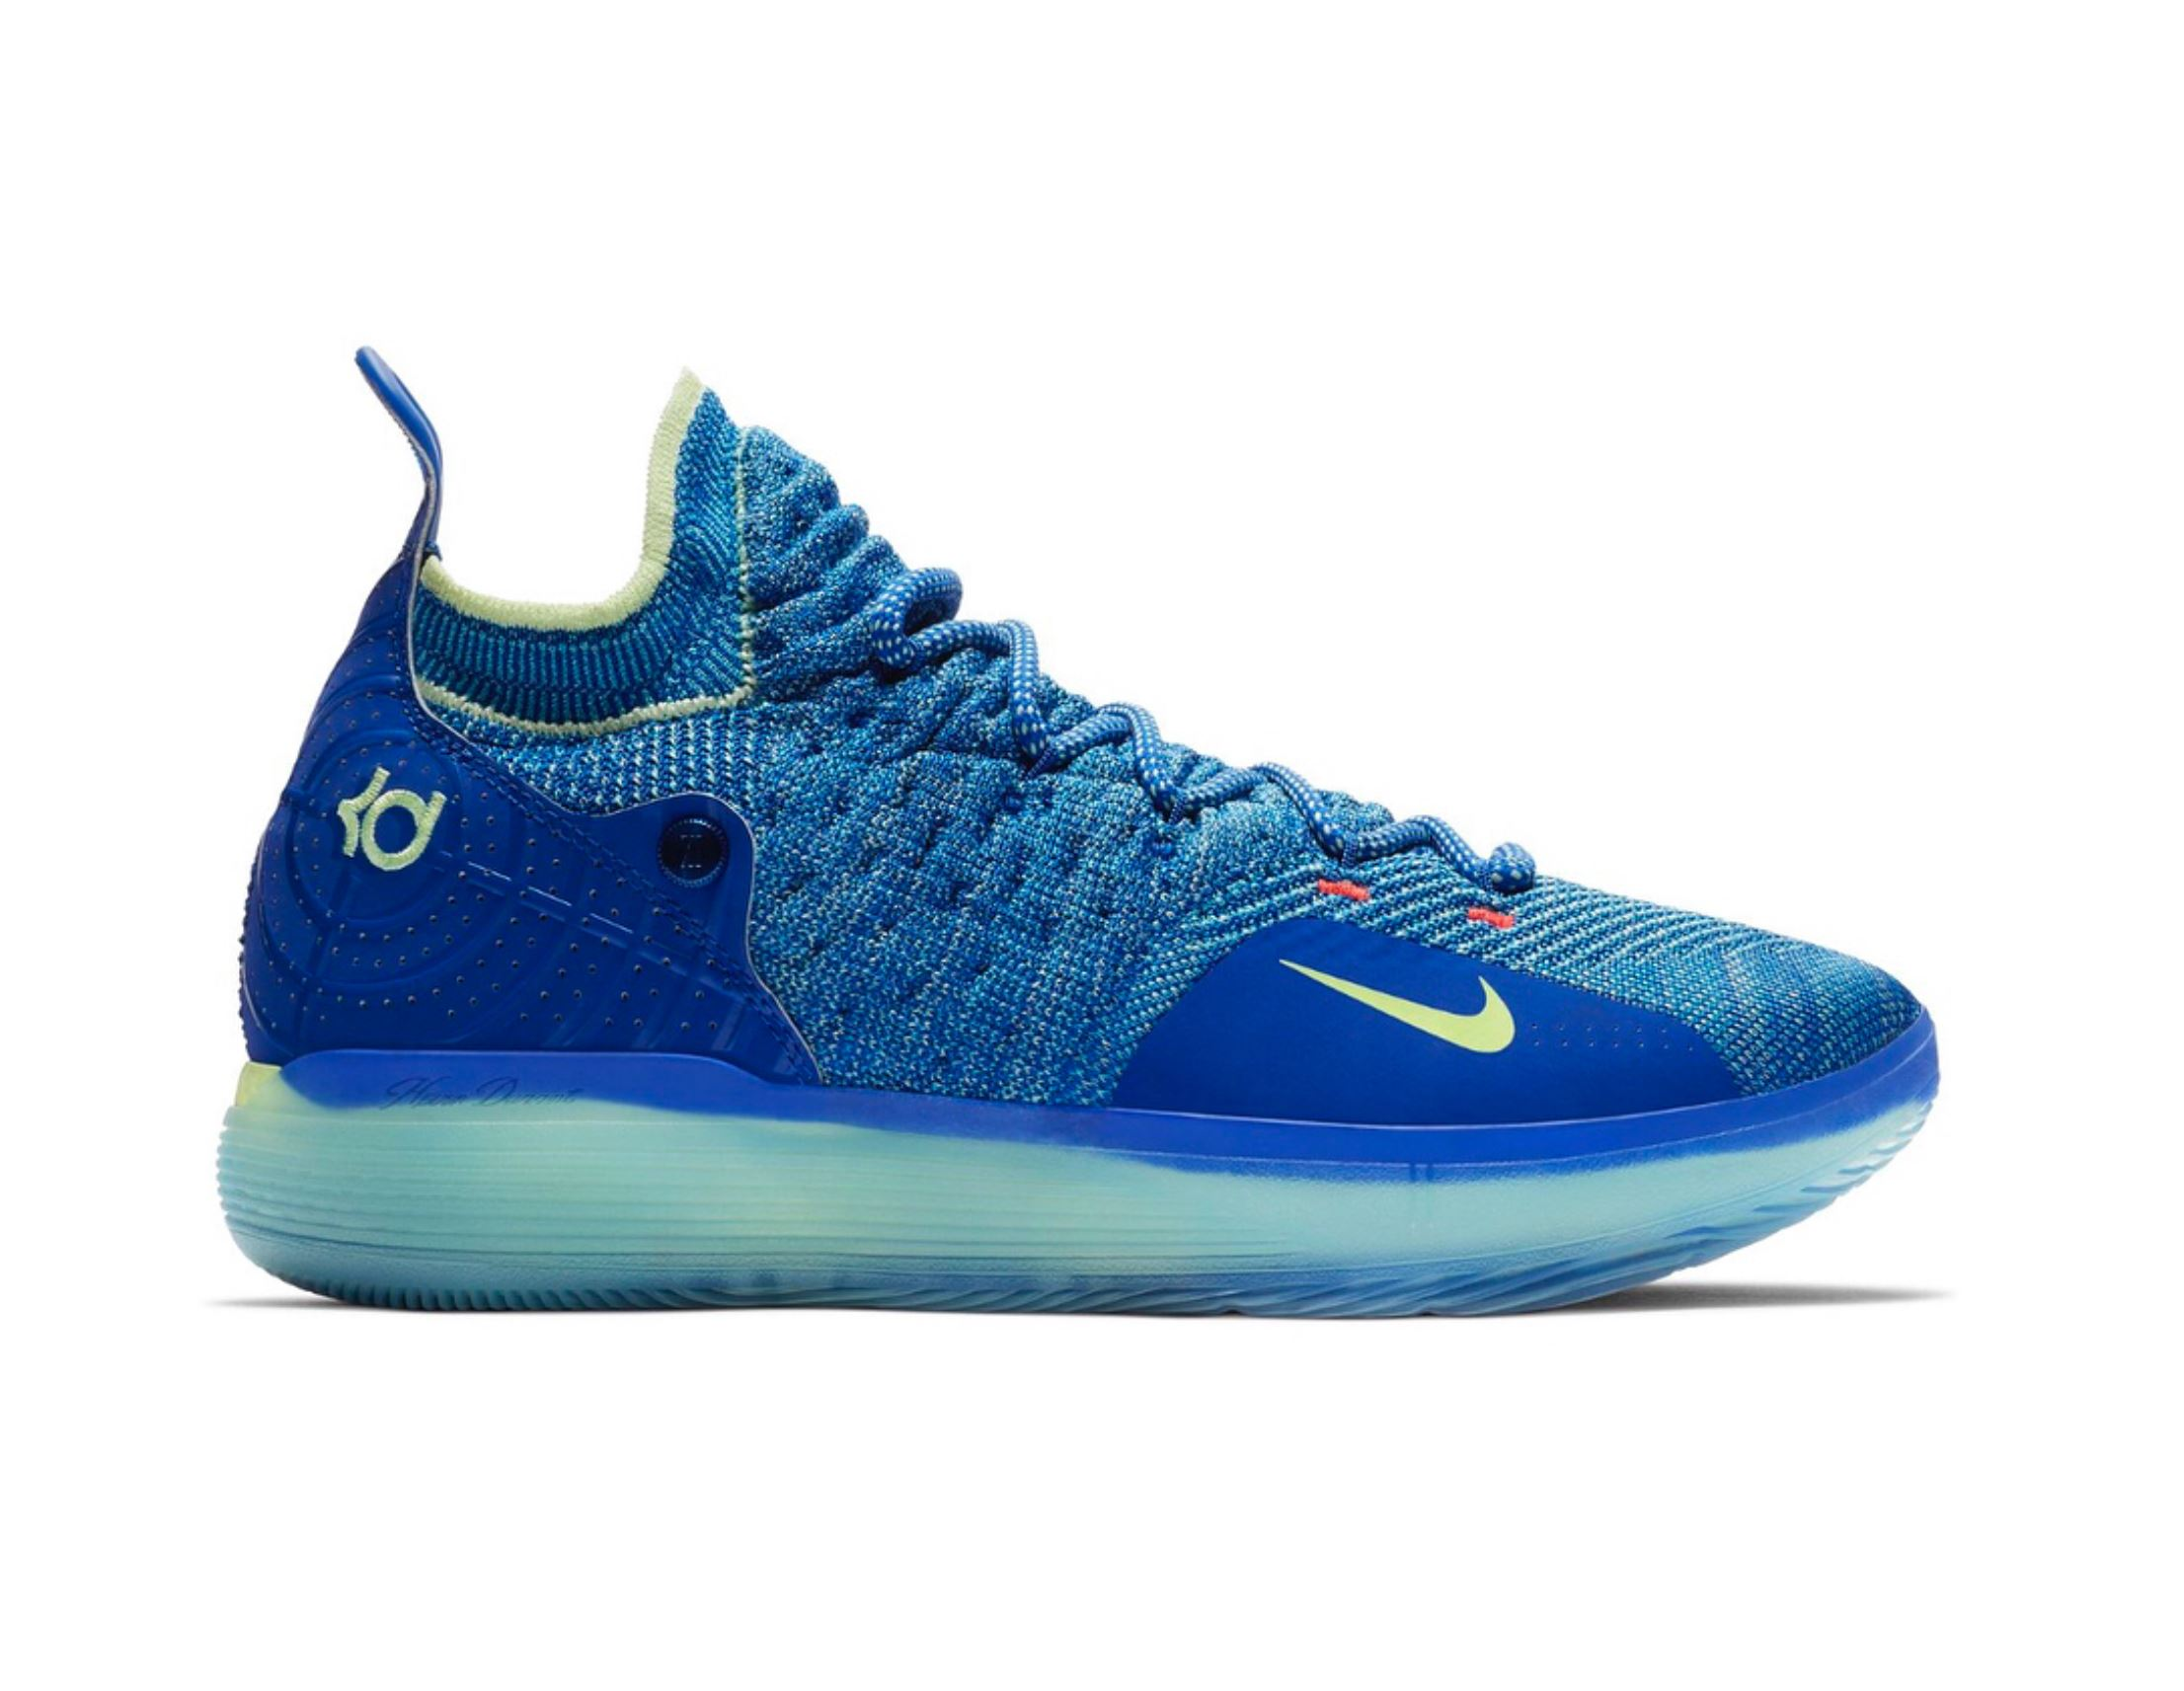 Nike Zoom Kd Shoe Review